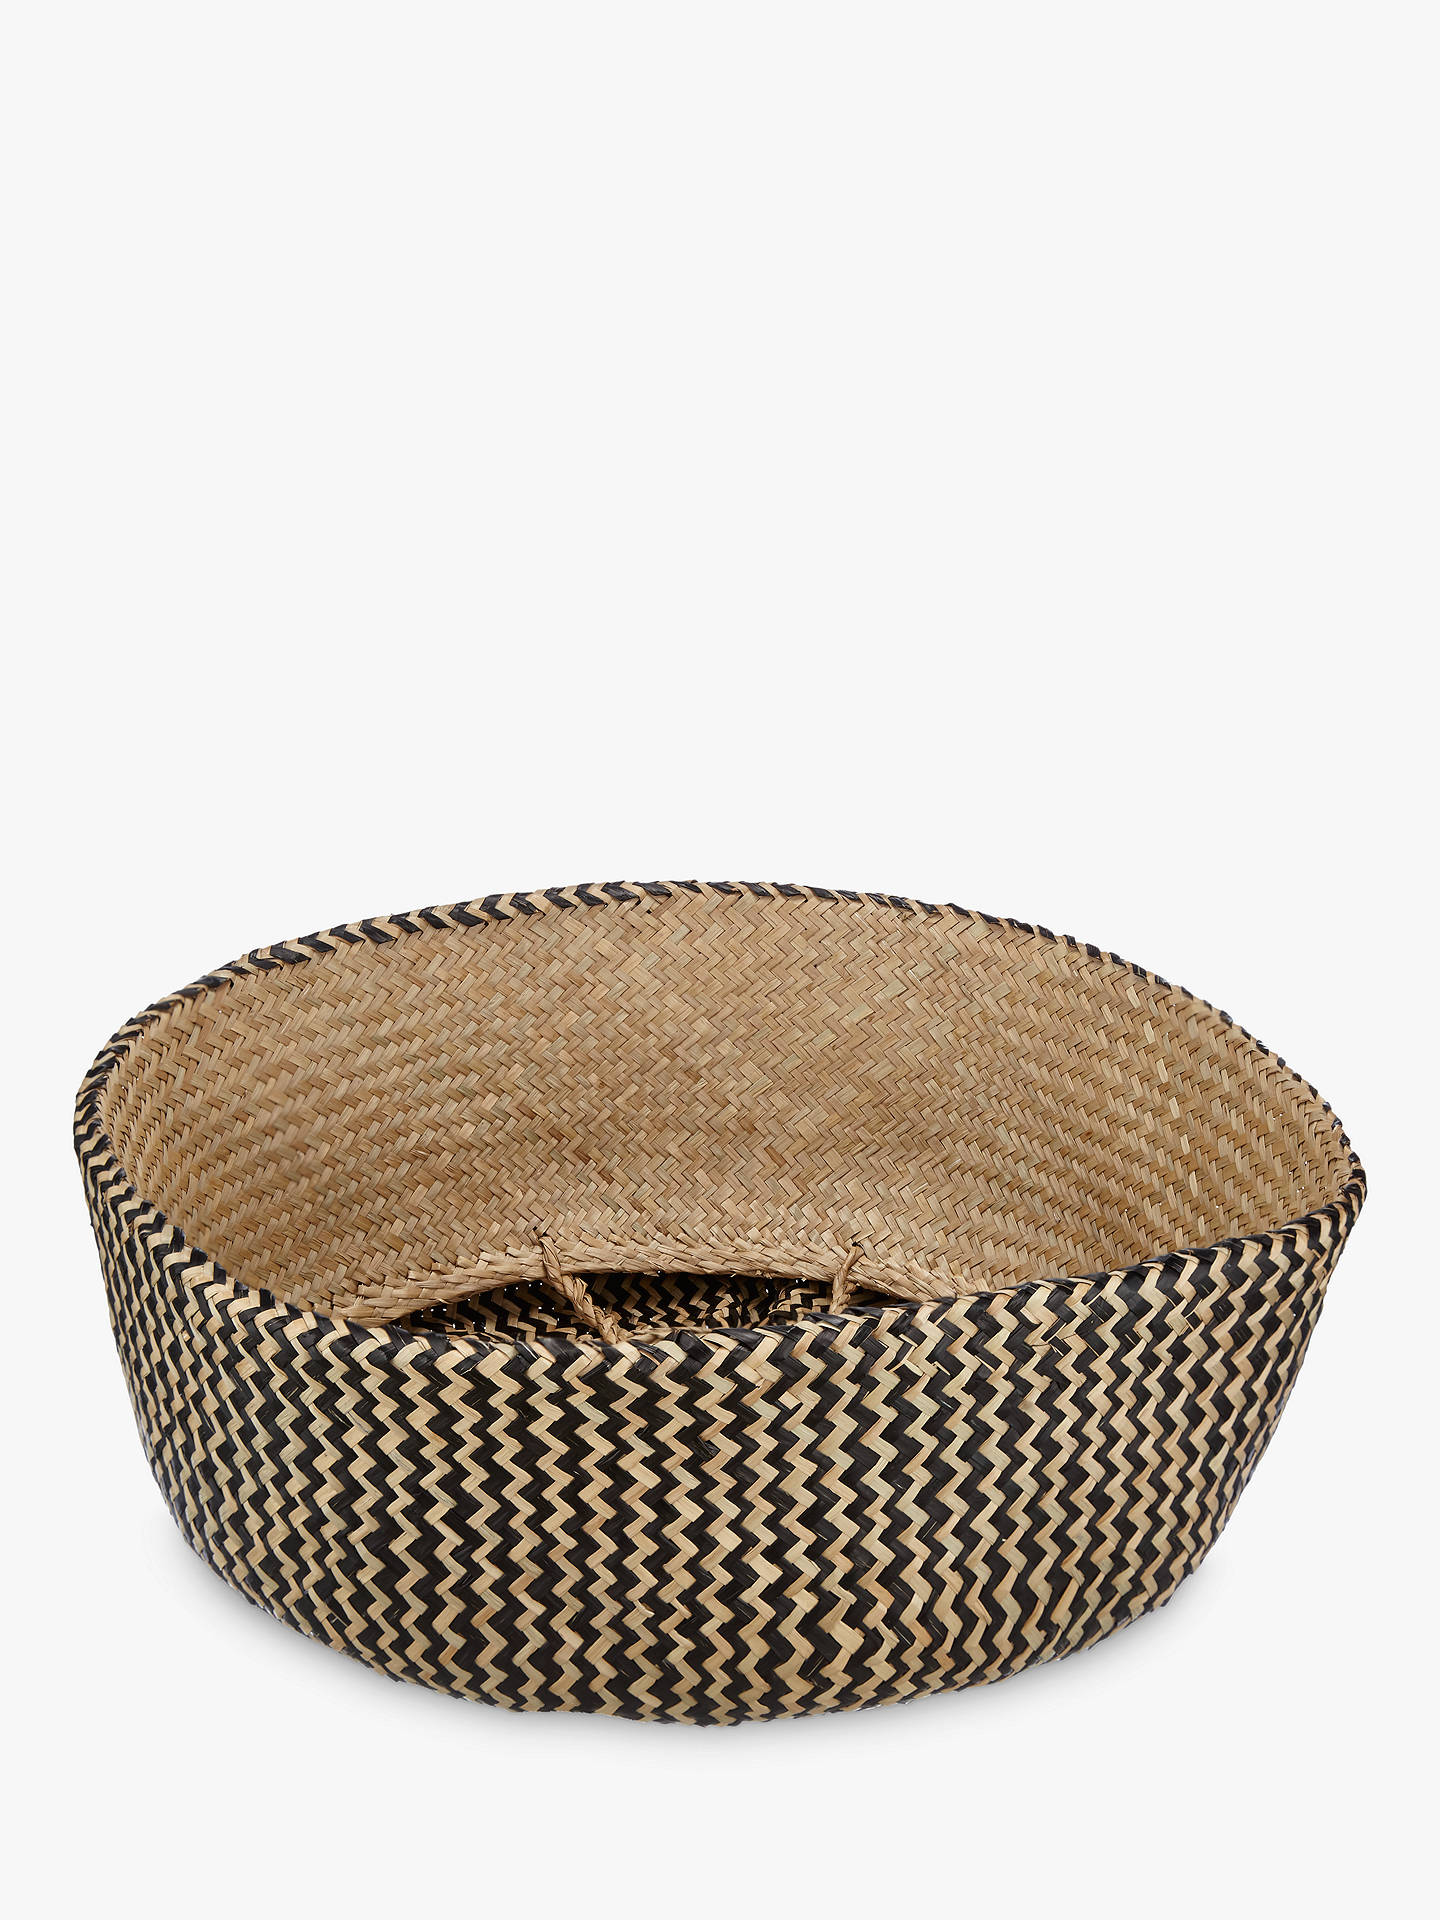 Buy John Lewis & Partners Dakara Seagrass Basket Online at johnlewis.com